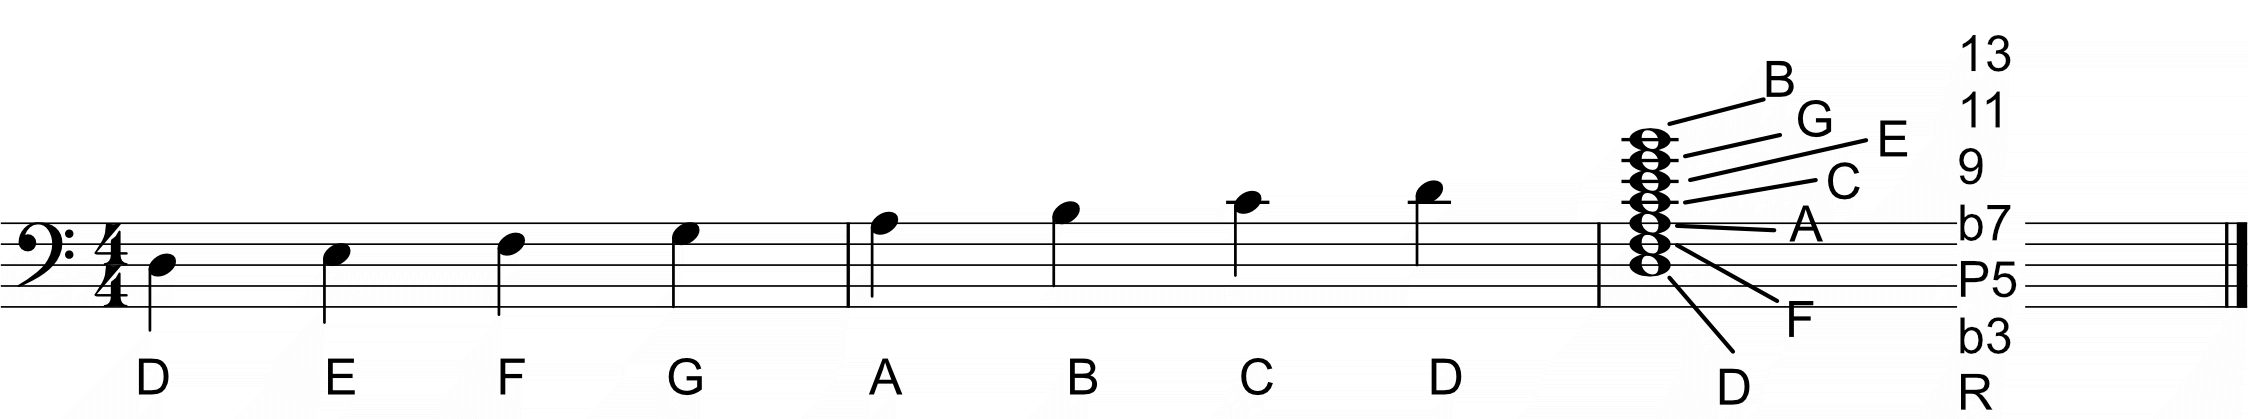 D Dorian scale and chord for bass guitar